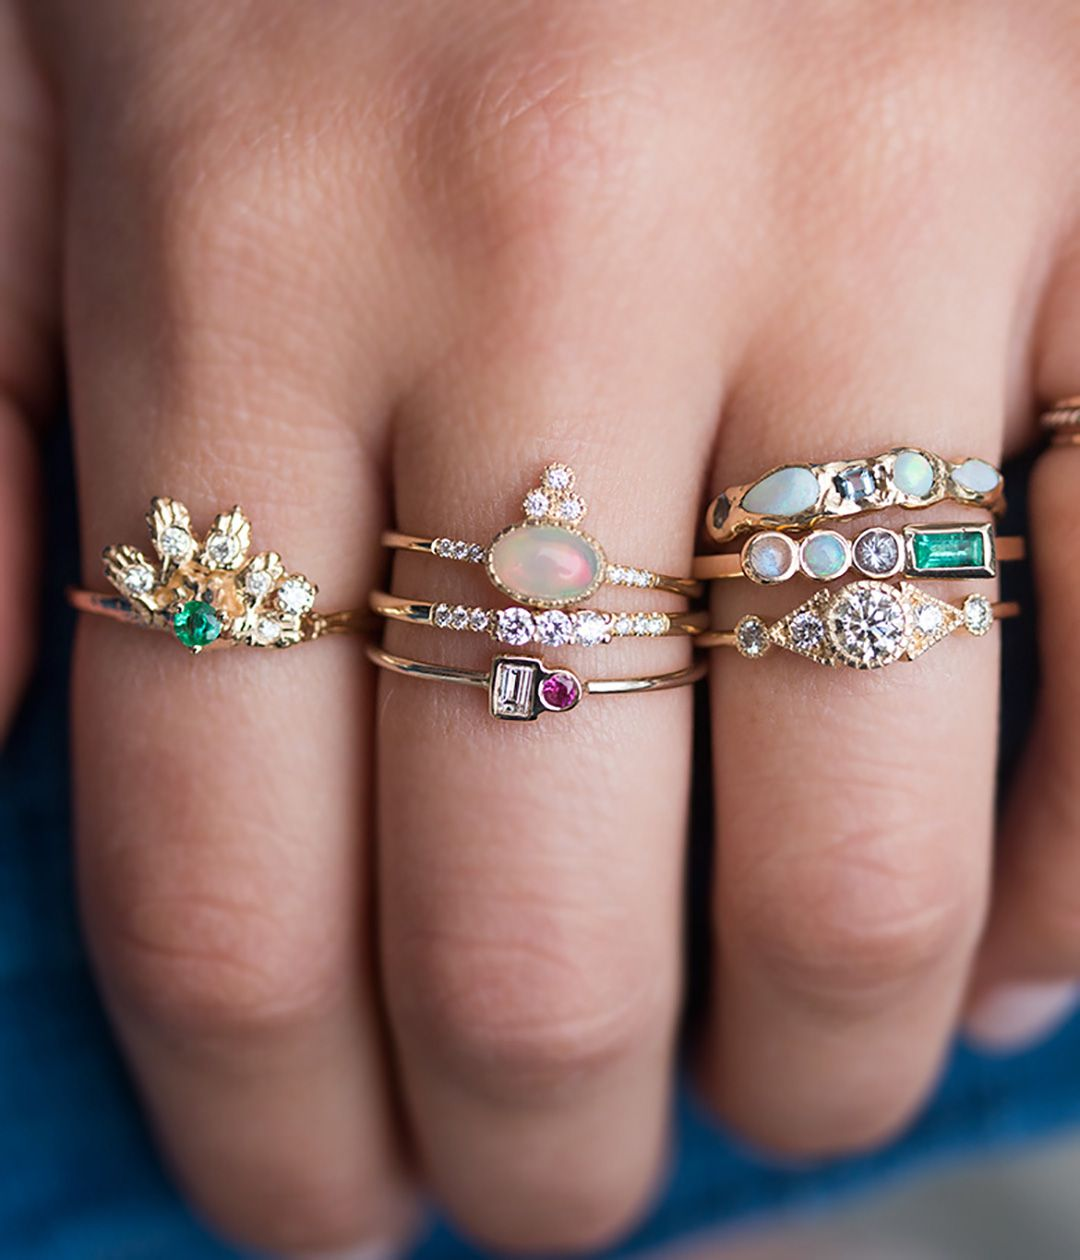 We've curated our favourite 15 engagement ring instagram feeds that you guys need to know about. Totally lust-worthy, we've got diamonds galore for you today!